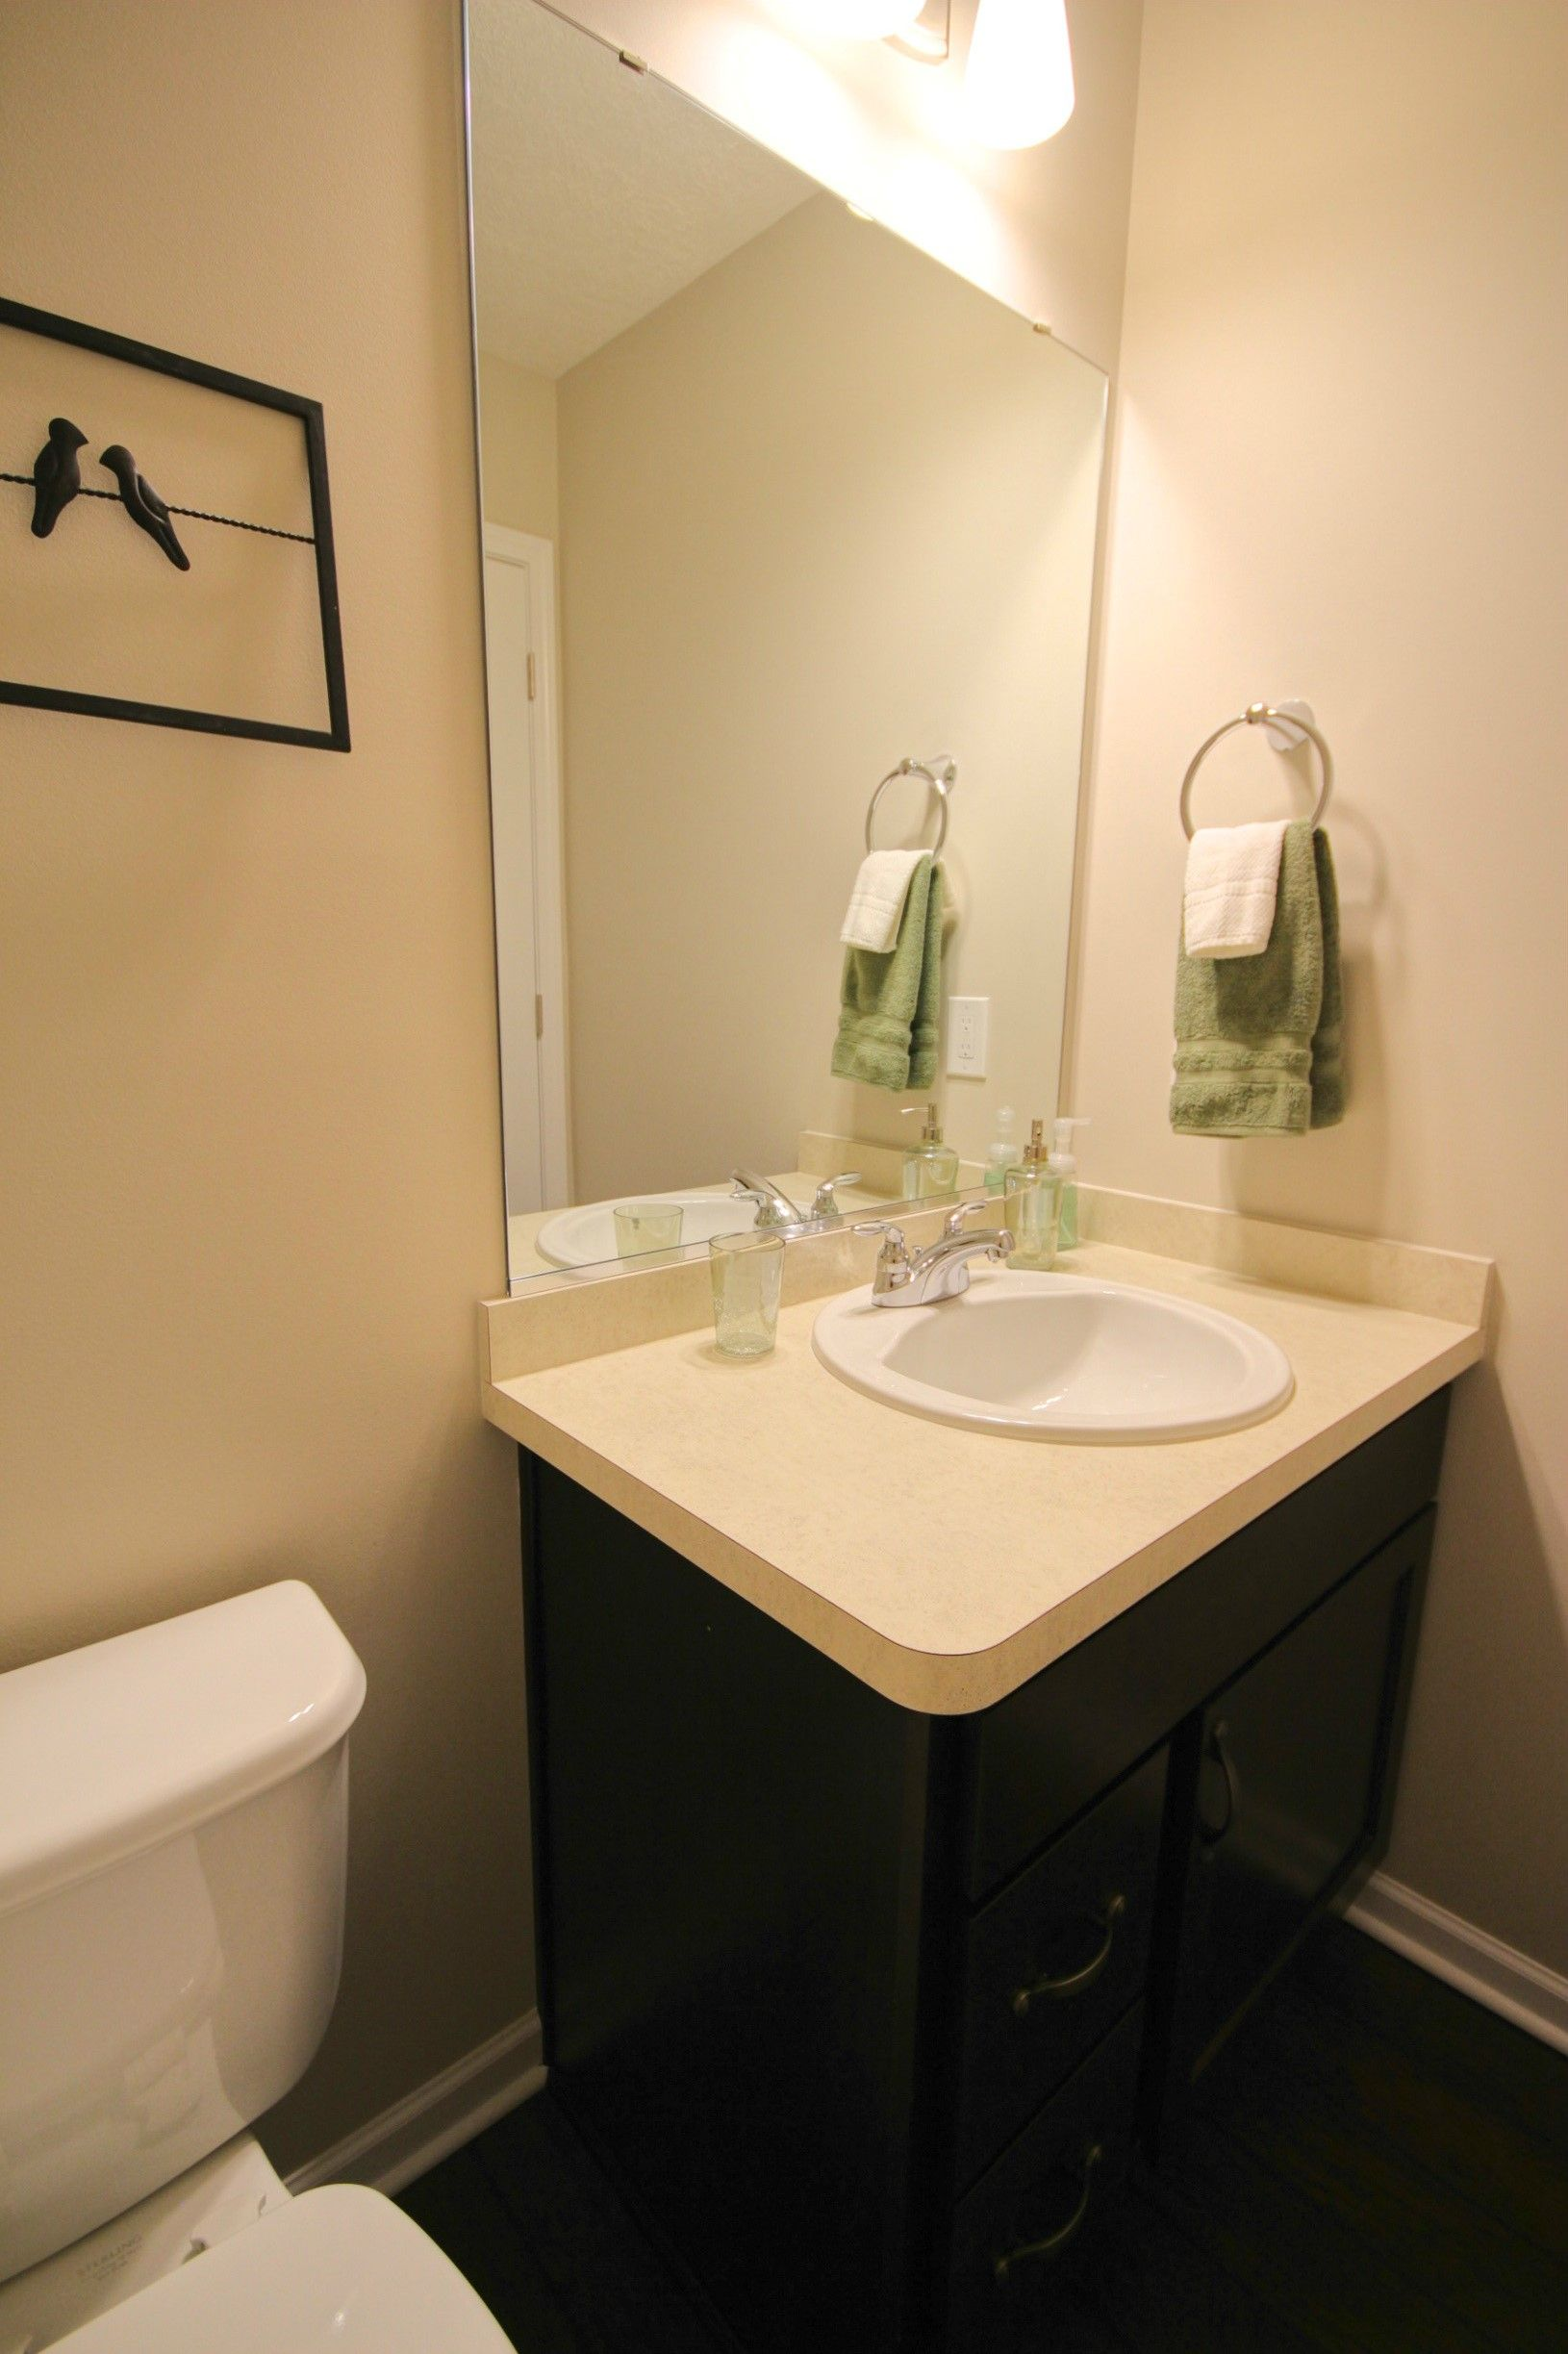 Bathroom featured in the Northwood By Mayberry Homes in Lansing, MI